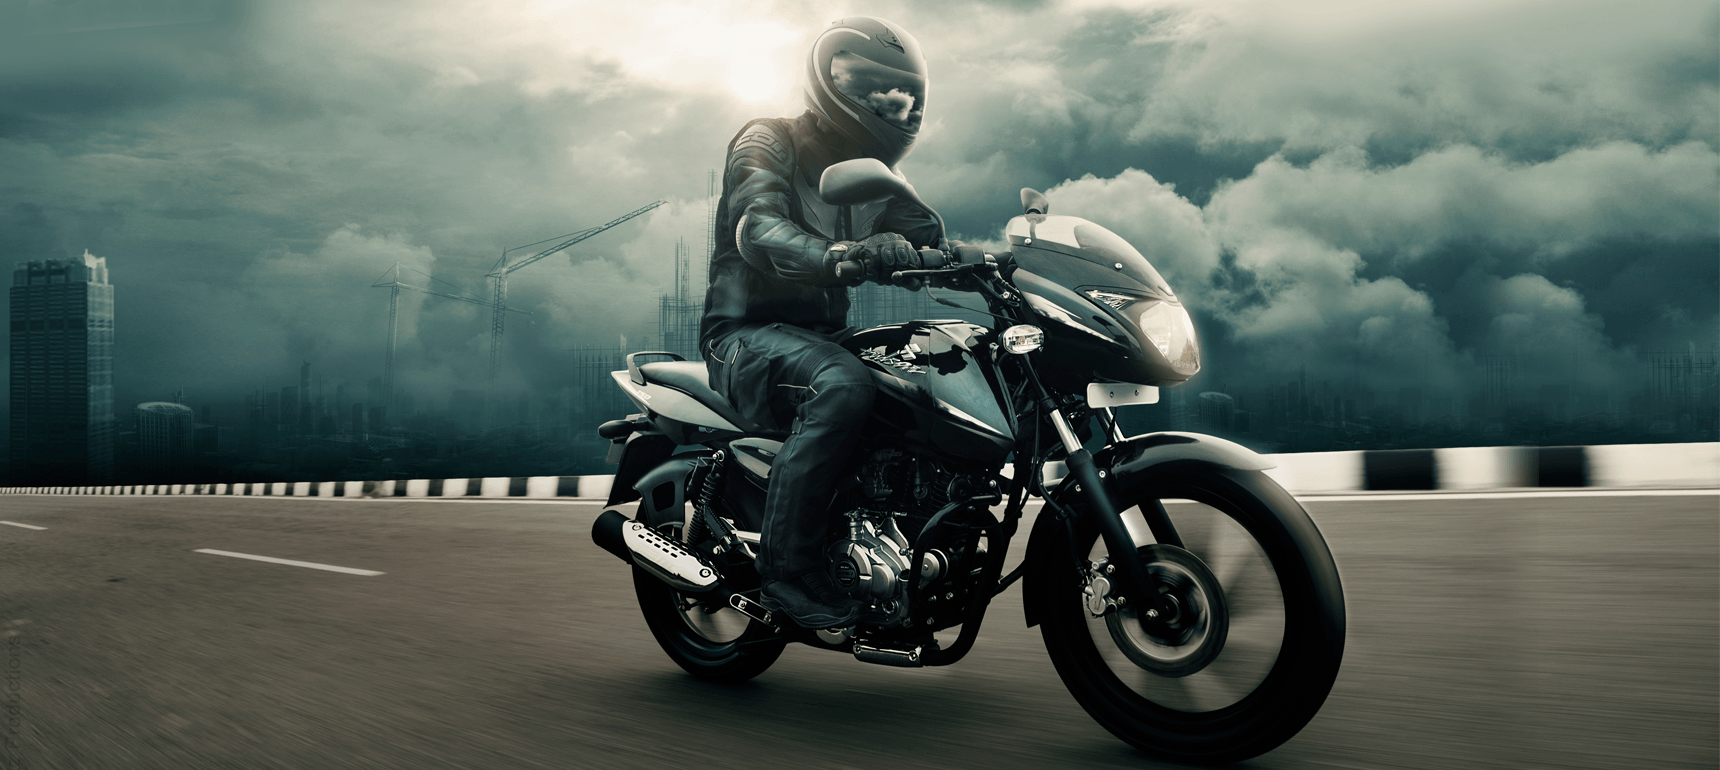 A biker is riding black and blue color Bajaj Pulsar 150cc motorcycle wearing black leather jacket and helmet in open road